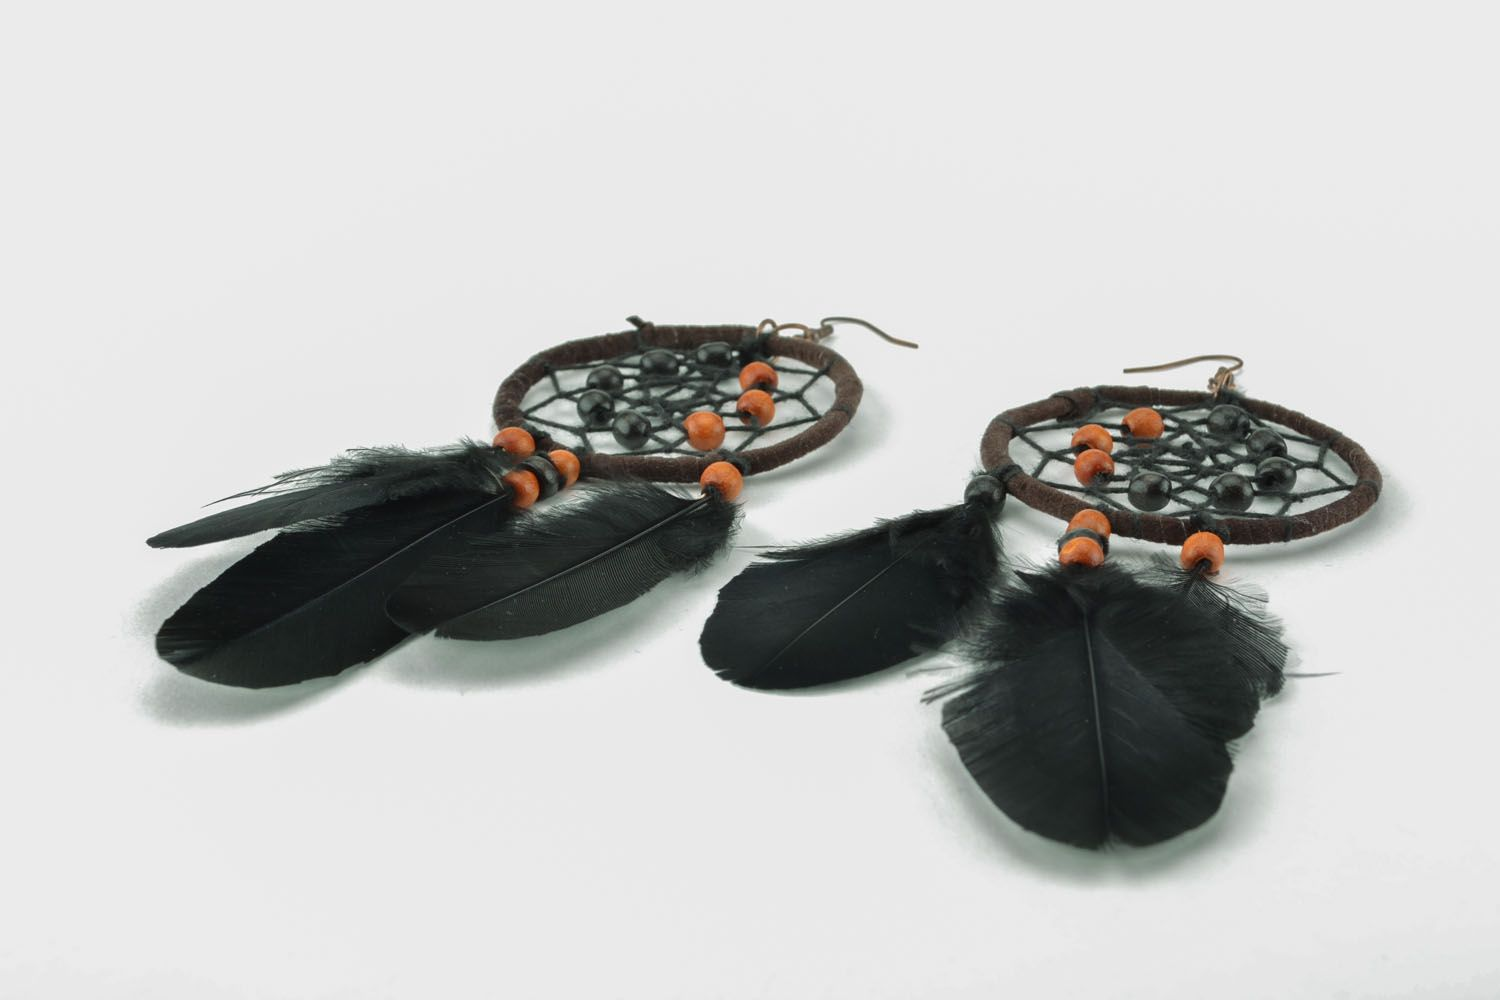 Homemade earrings in the shape of Dreamcatchers photo 2